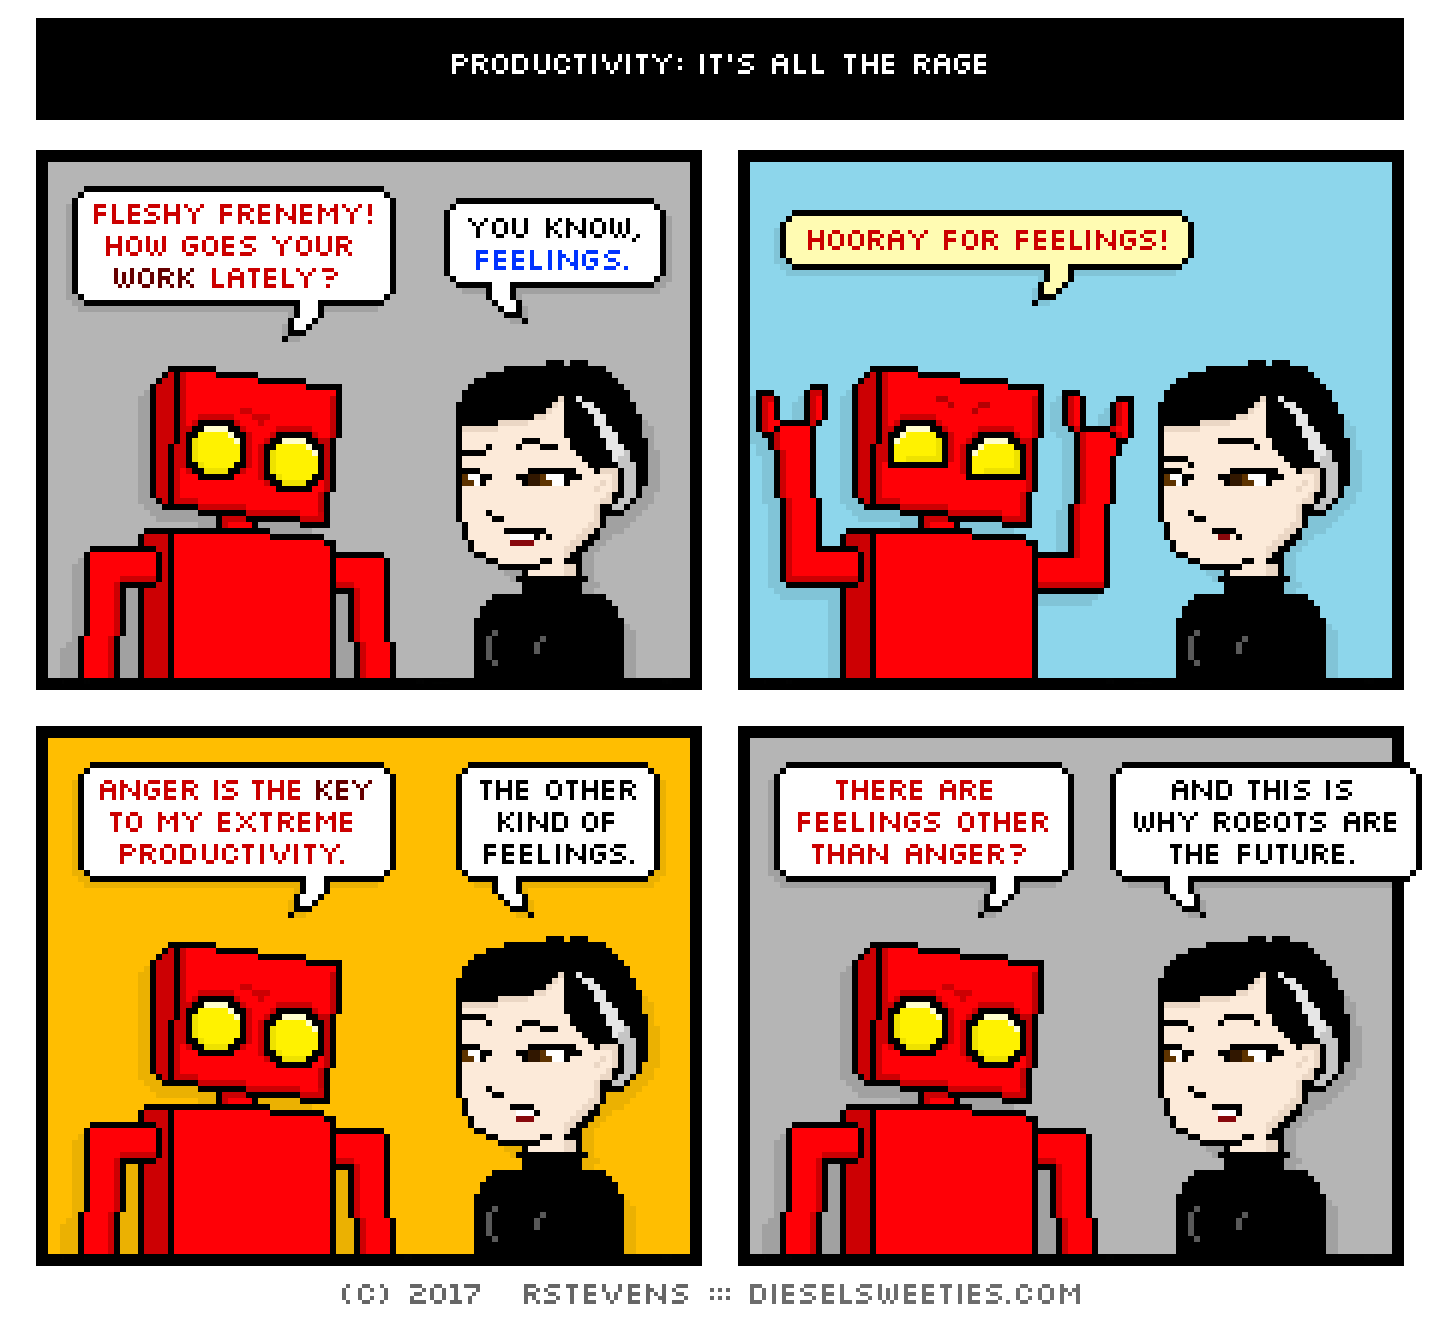 red robot, pale suzie : arms up, fleshy frenemy! how goes your work lately? you know, feelings. hooray for feelings! anger is the key to my extreme productivity. the other kind of feelings. there are feelings other than anger? and this is why robots are the future.